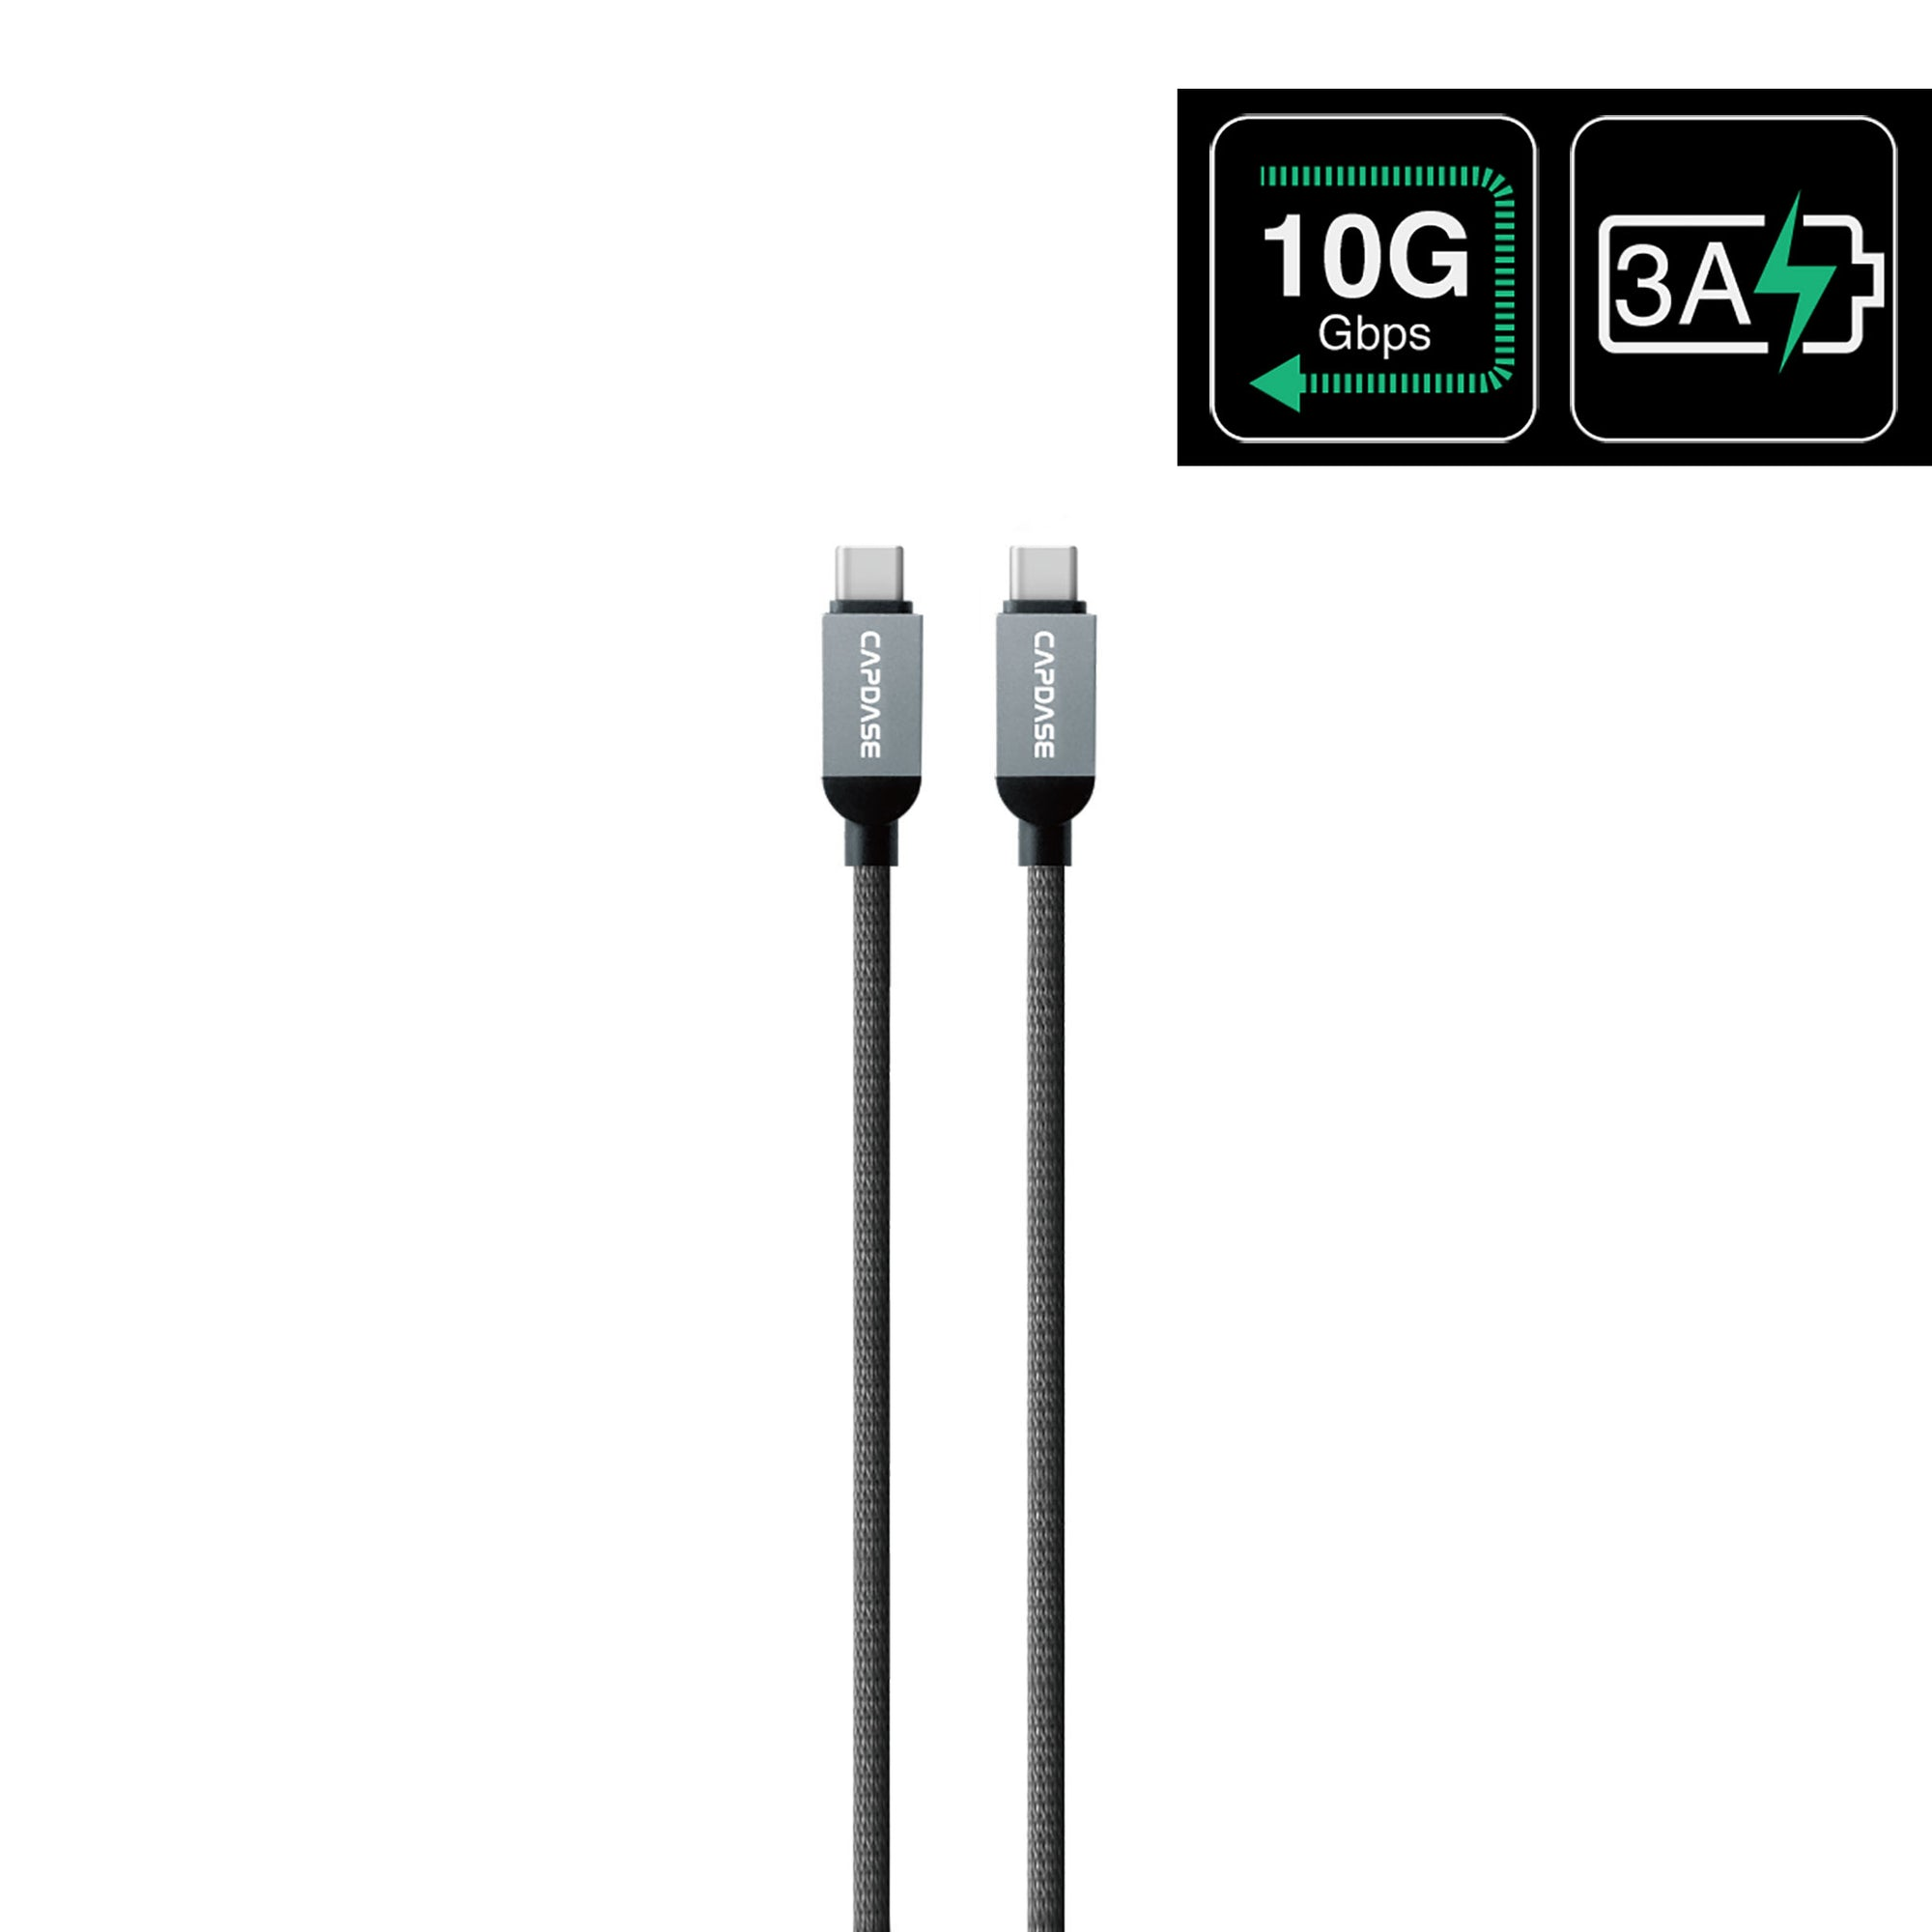 METALLIC CC10G USB-C To USB-C Sync and Charge Cable 1M (10 Gbps)